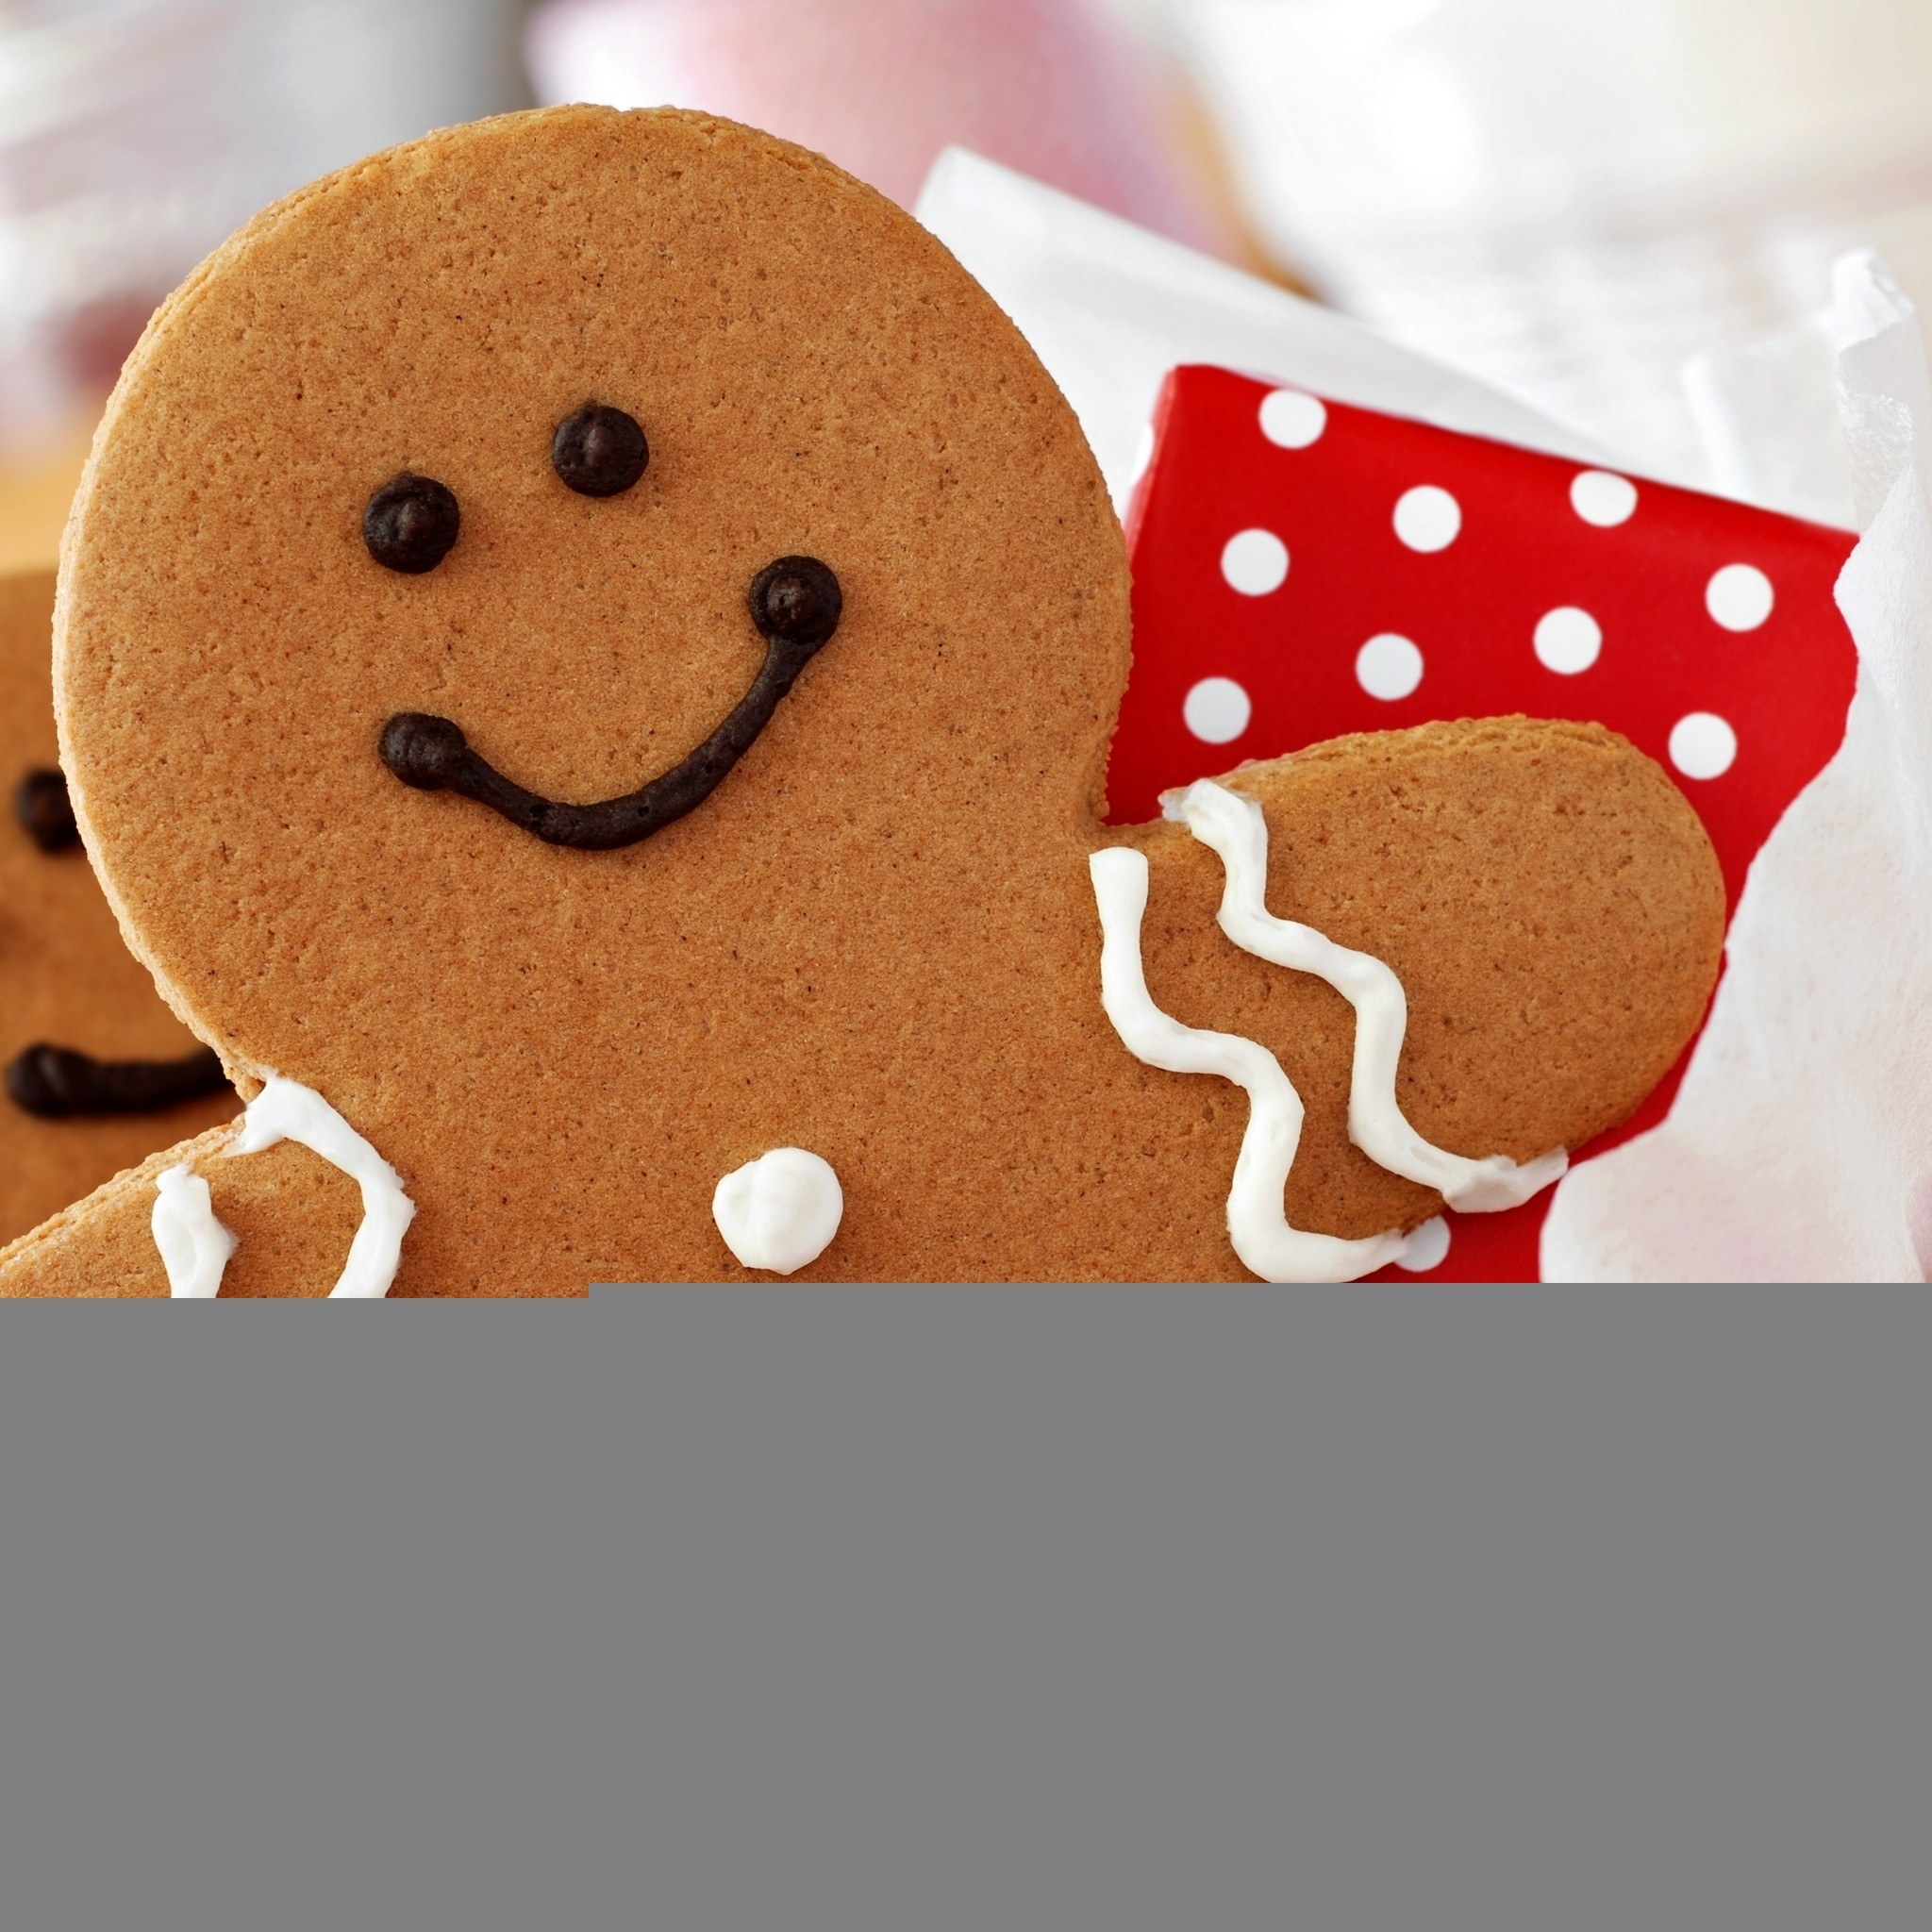 … christmas and new year cookies ipad air wallpaper download …